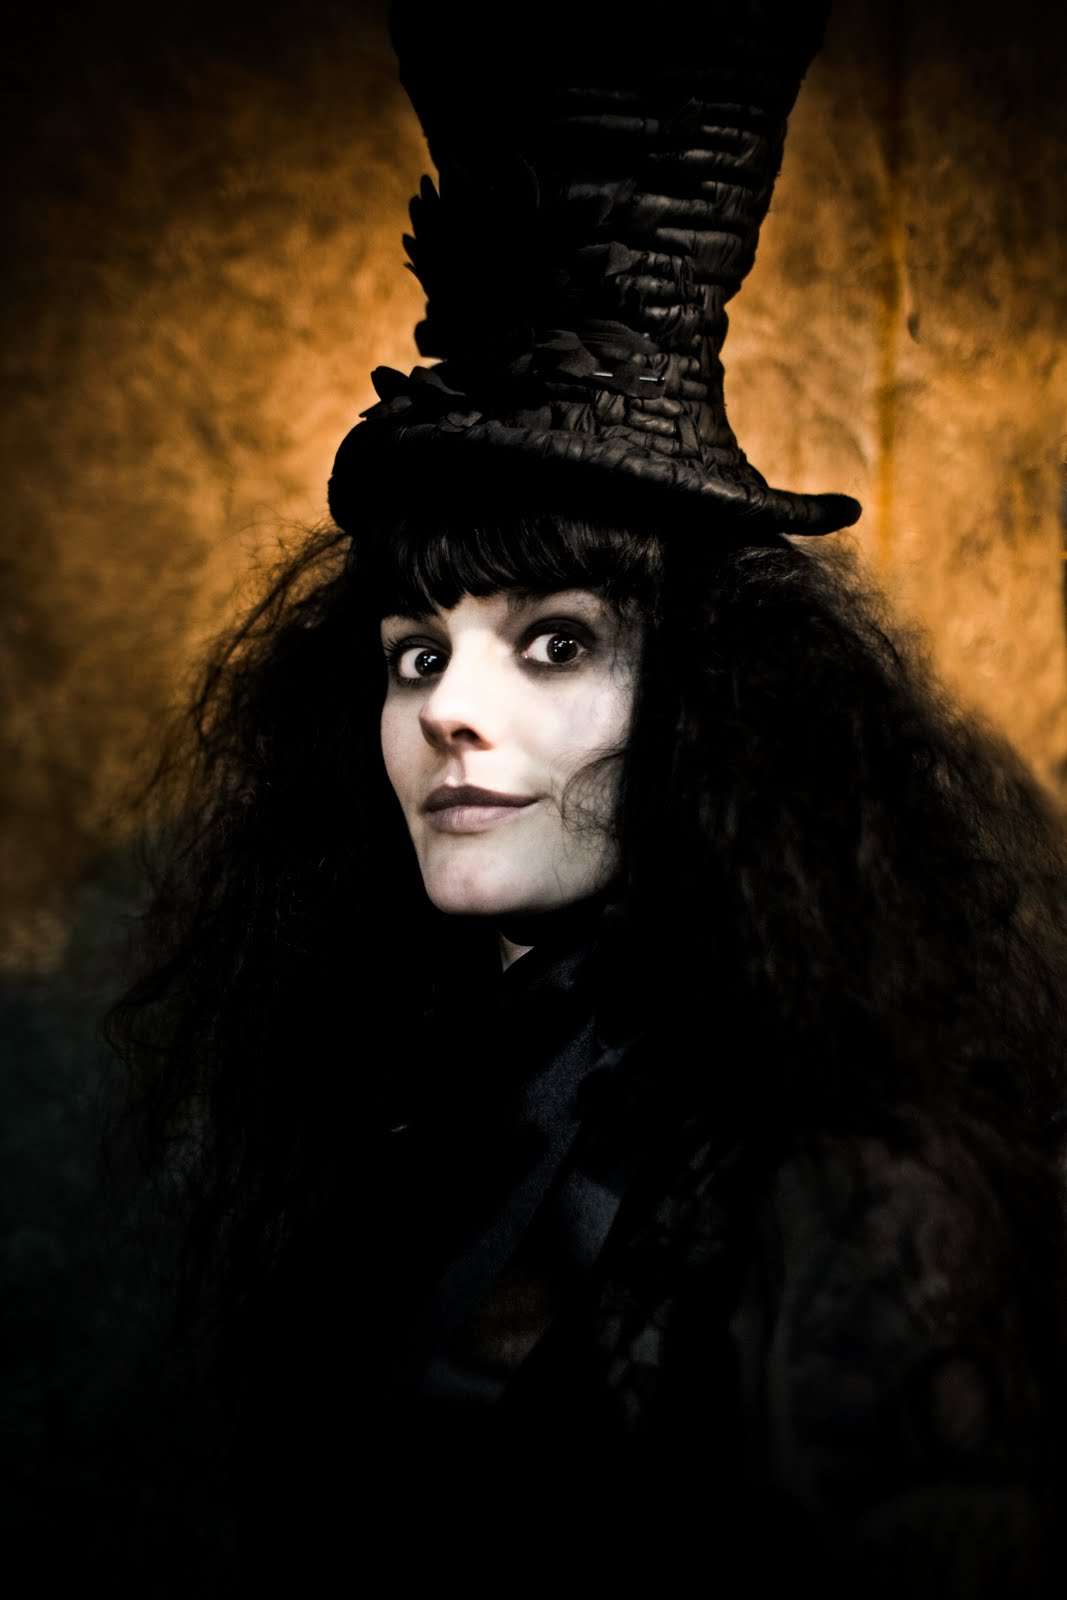 A bad witch's blog: Gothic witch is Manchester Mona Lisa